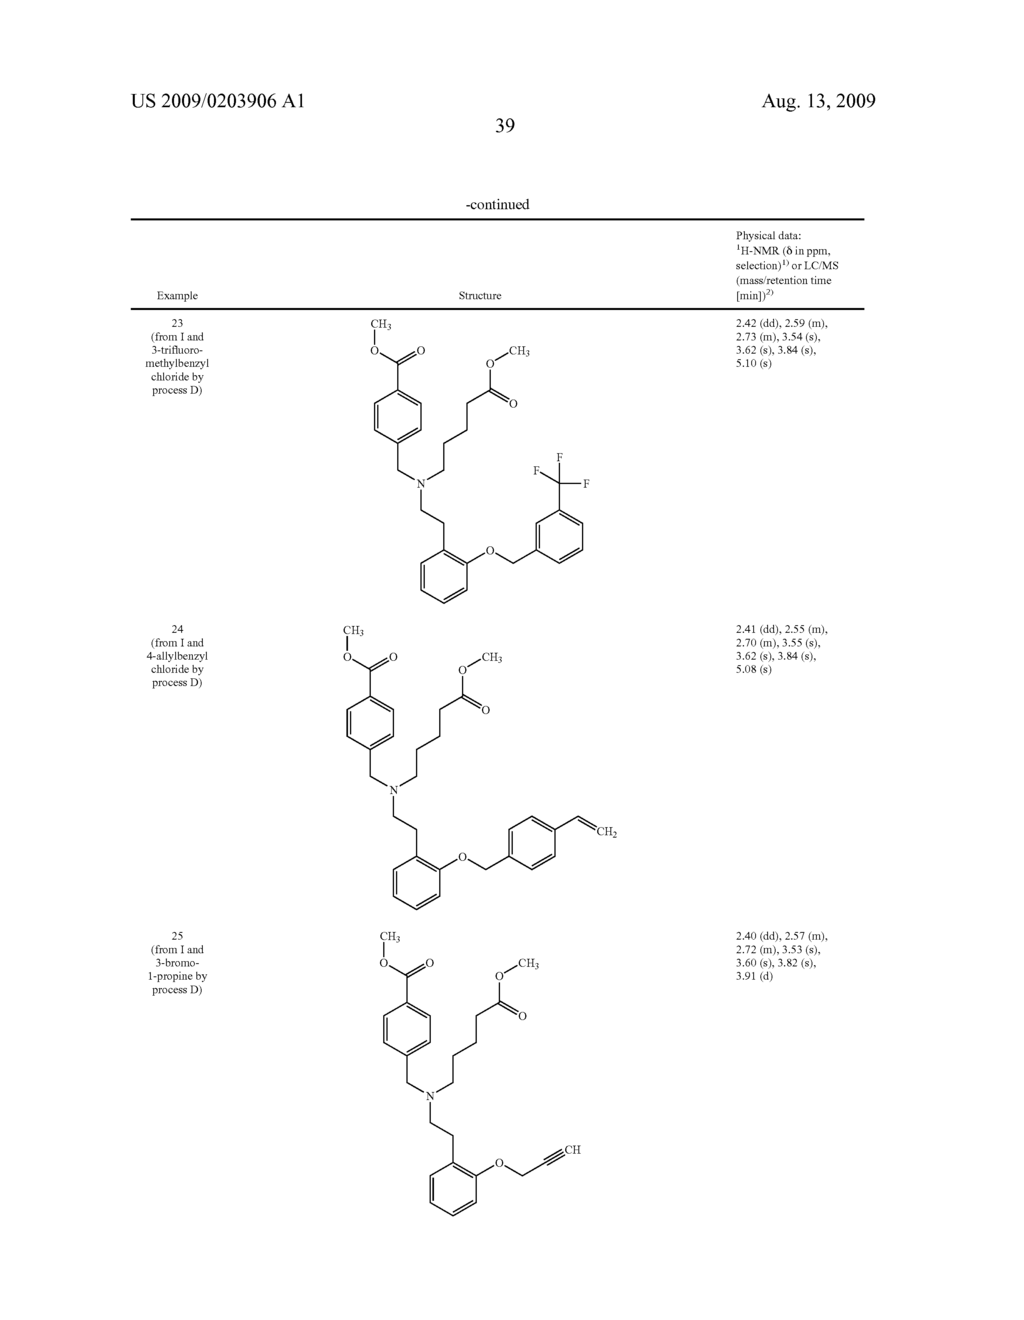 NOVEL AMINODICARBOXYLIC ACID DERIVATIVES HAVING PHARMACEUTICAL PROPERTIES - diagram, schematic, and image 40